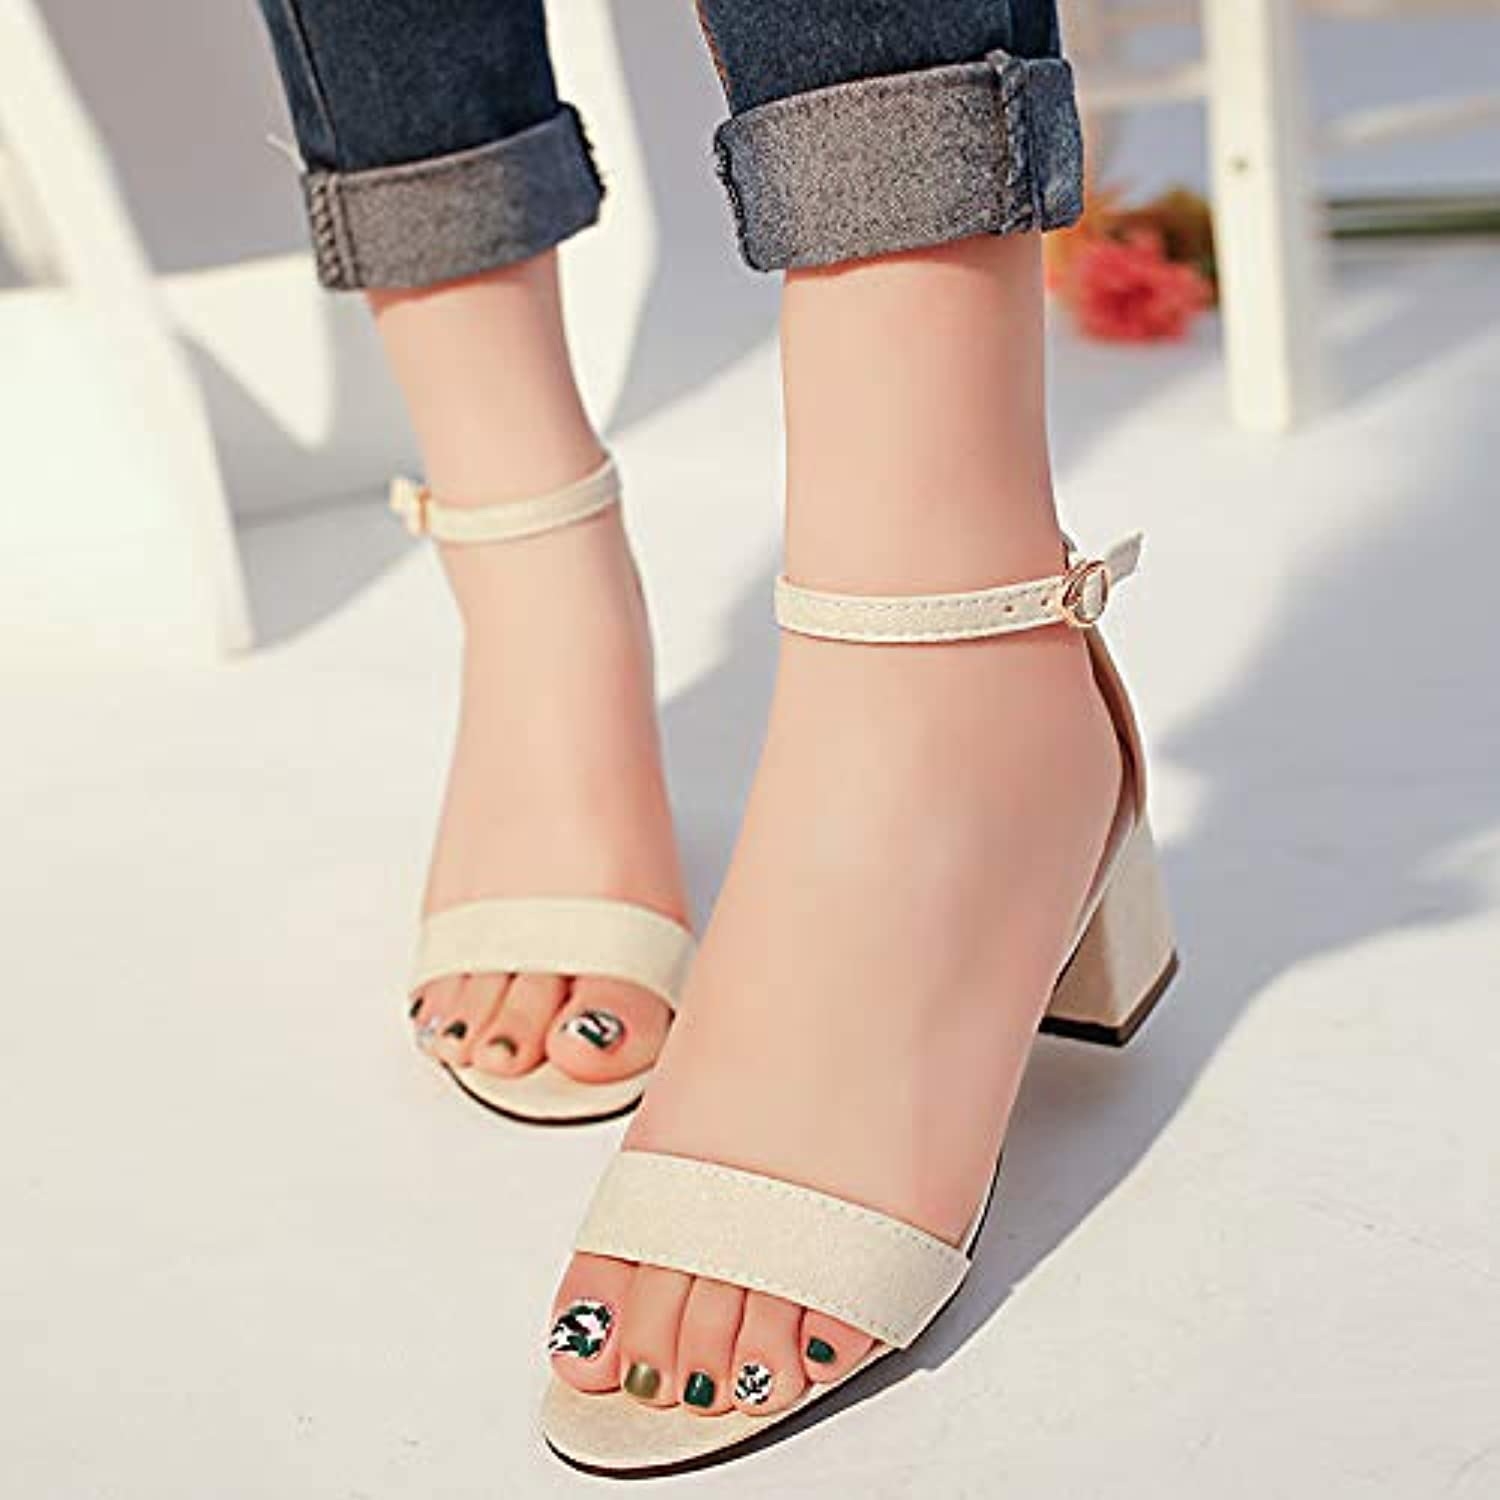 JKFESX New Mid-Heel shoes Summer 2019 New Mid-Heel shoes Women's shoes Suede Sexy One-Word Fashion